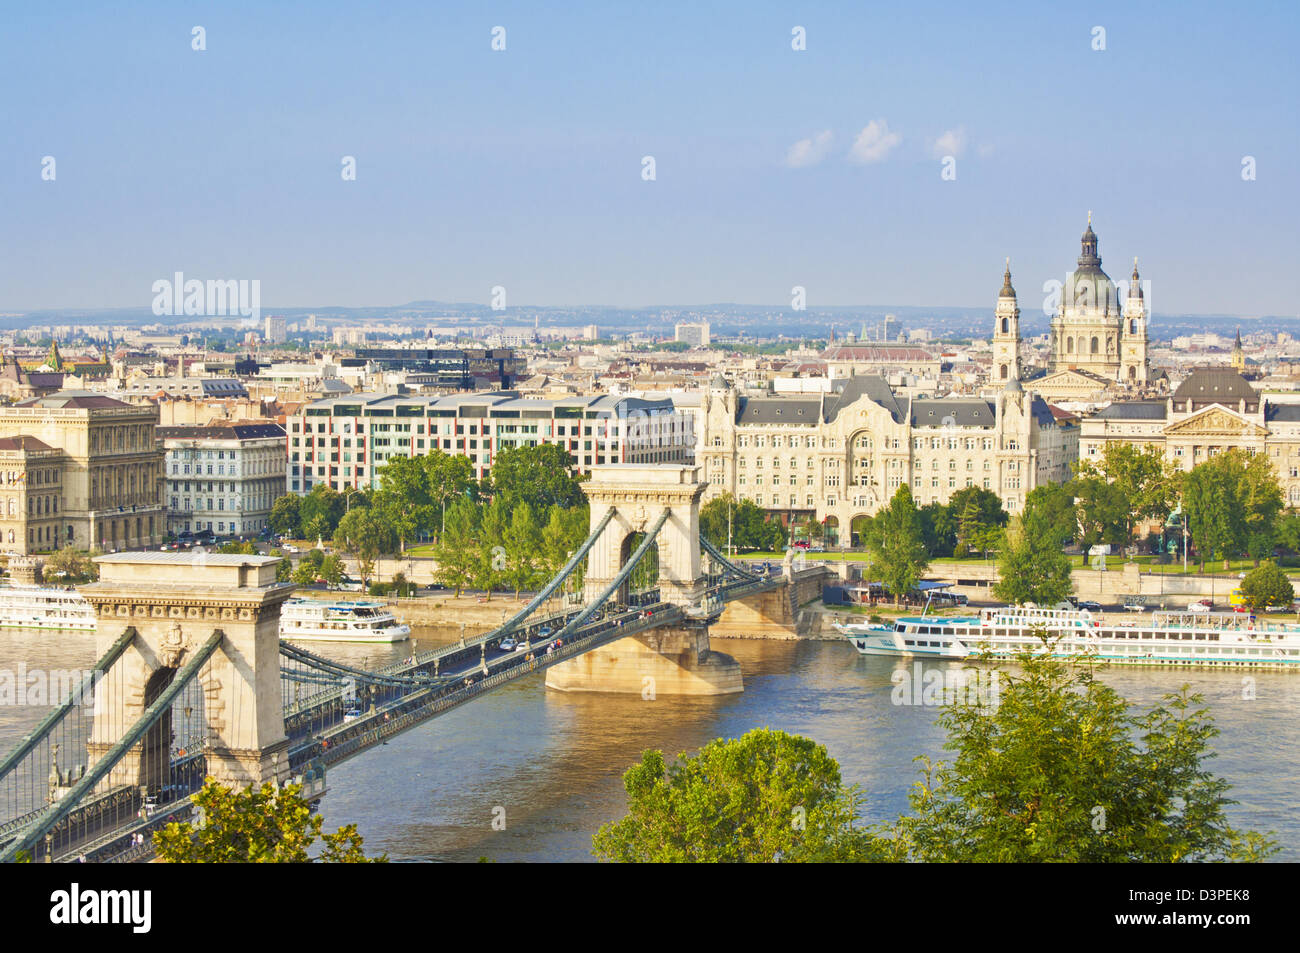 Chain Bridge over the river Danube with the Gresham hotel, St Stephen's basilica, cruise boats Budapest, Hungary, Stock Photo